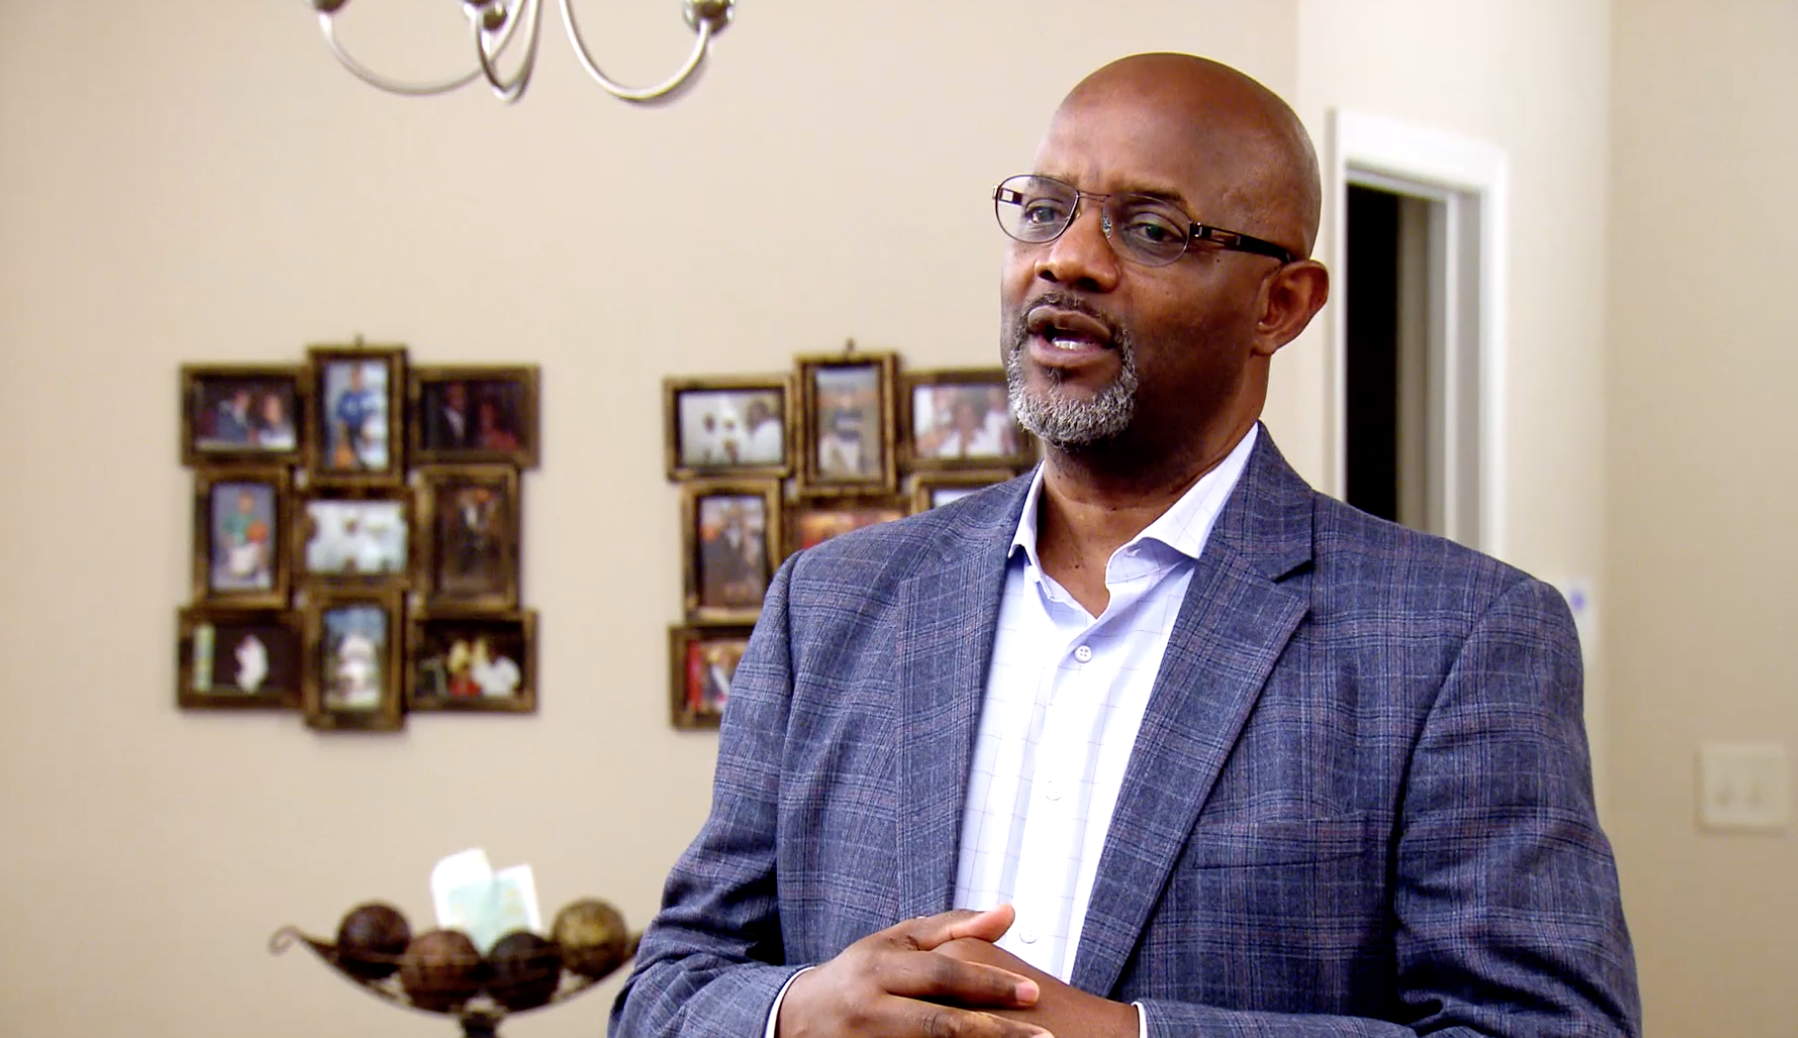 'Married at First Sight: Unmatchables': Pastor Cal Tries Hilarious New Exercise With Clyde